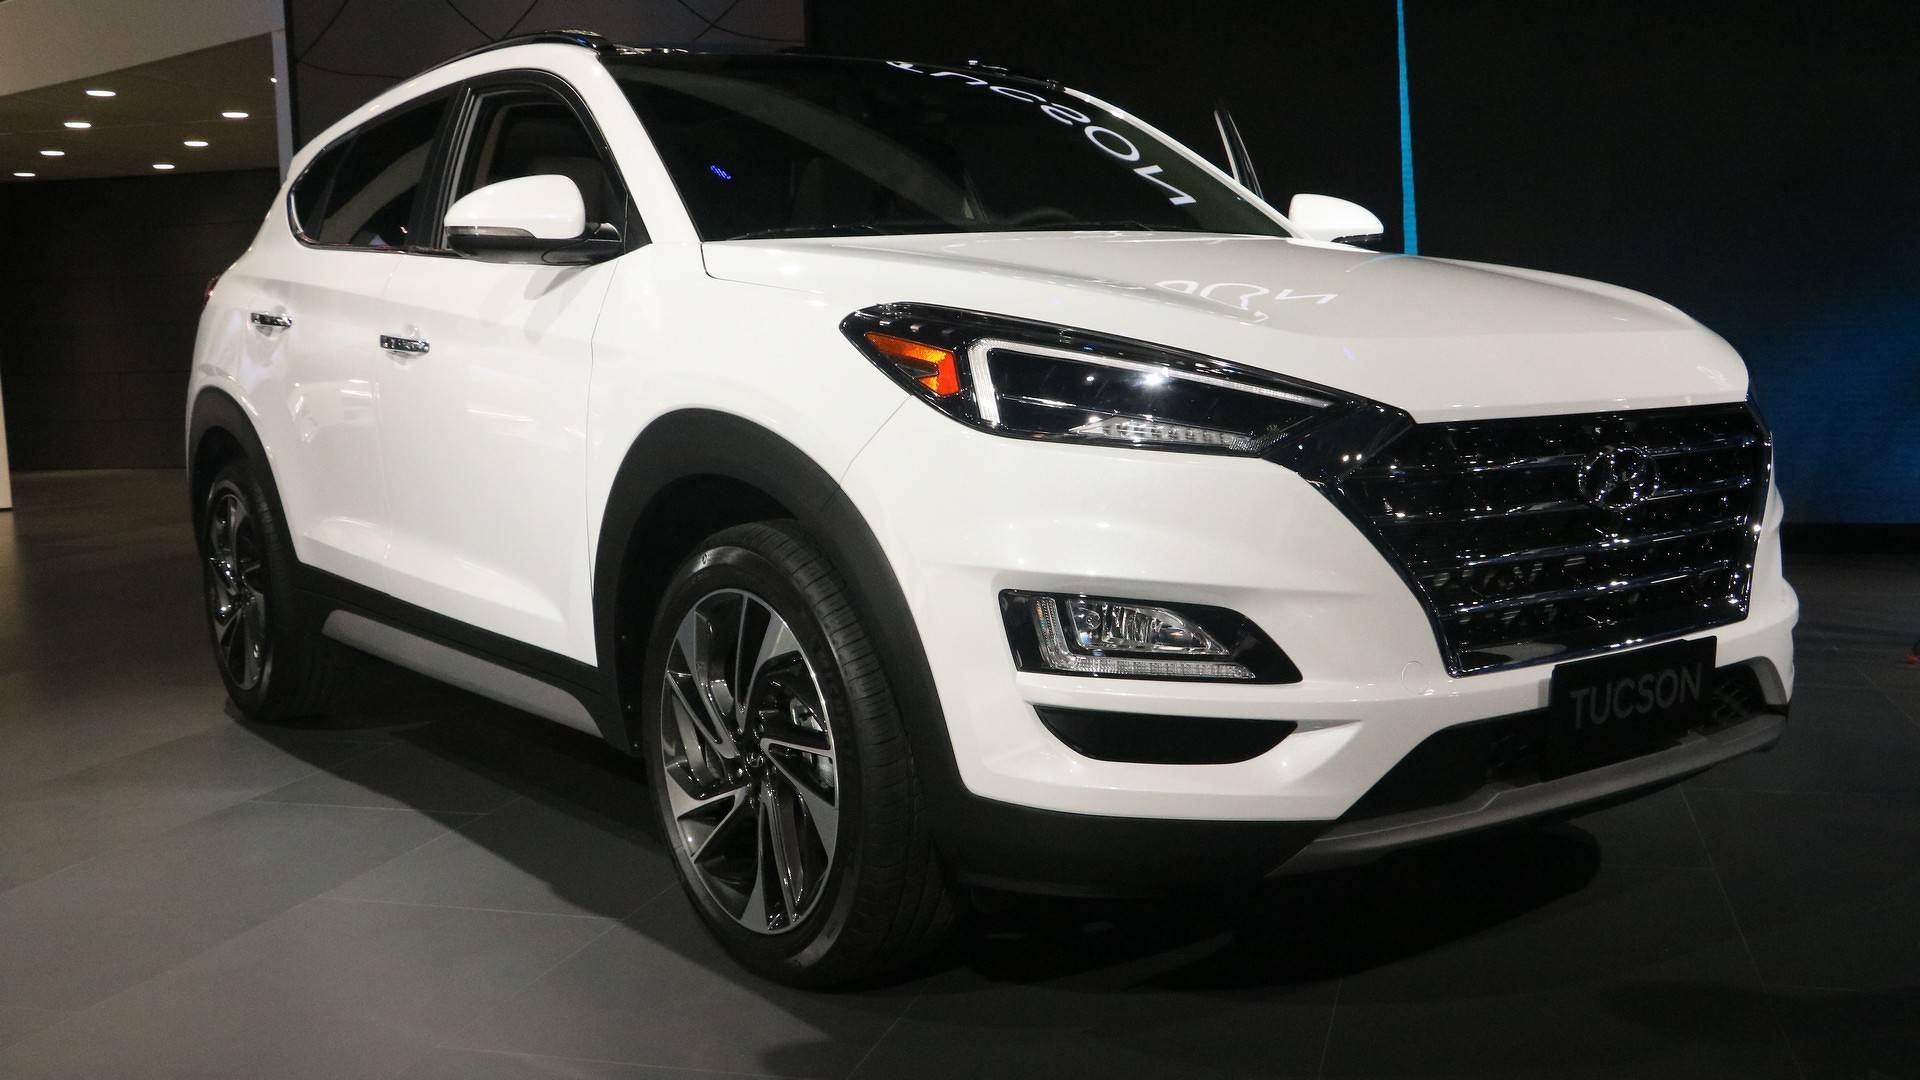 2019 Hyundai Tucson Arrives With Major Styling Updates New Tech